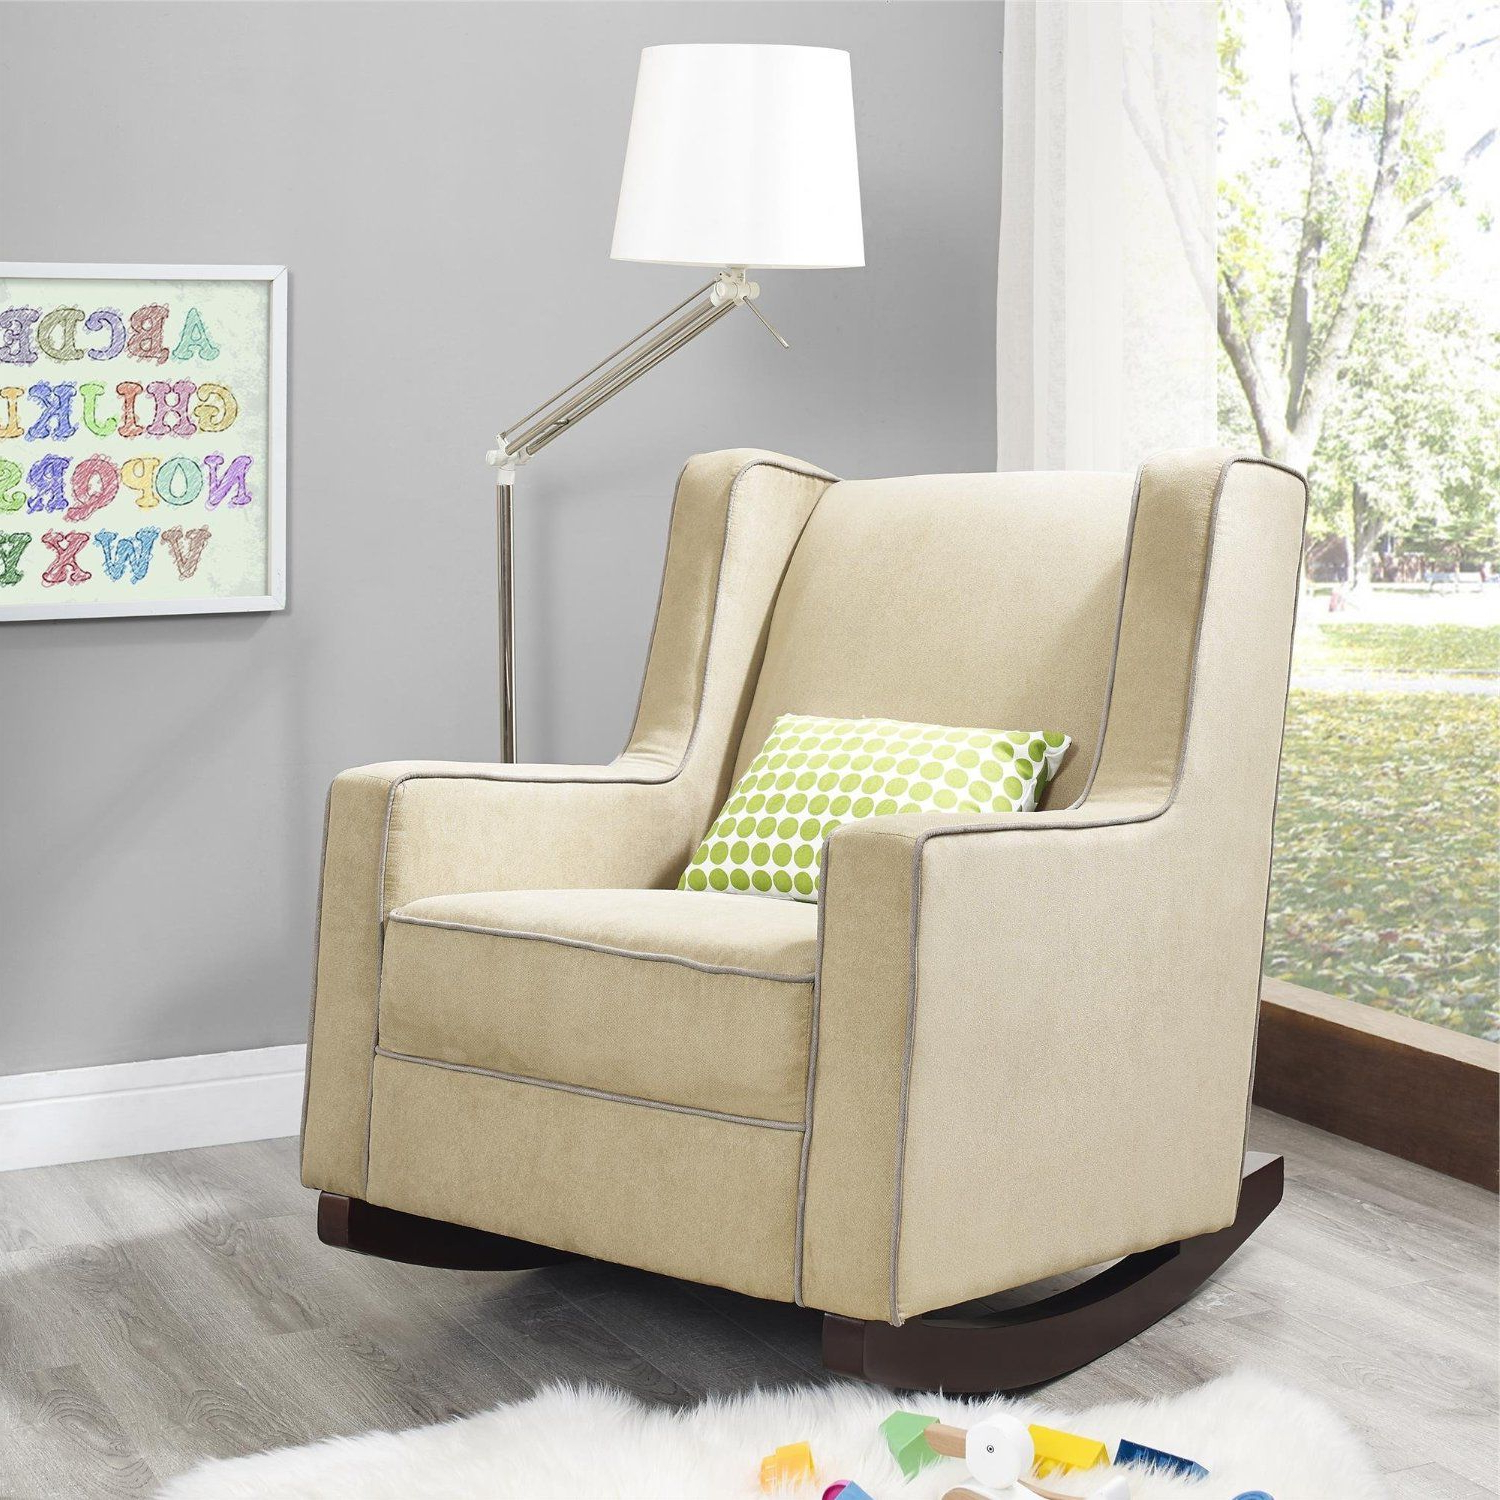 Fashionable Abbey Swivel Glider Recliners With Amazon – Baby Relax The Abby Nursery Rocker Chair, Beige (View 12 of 20)